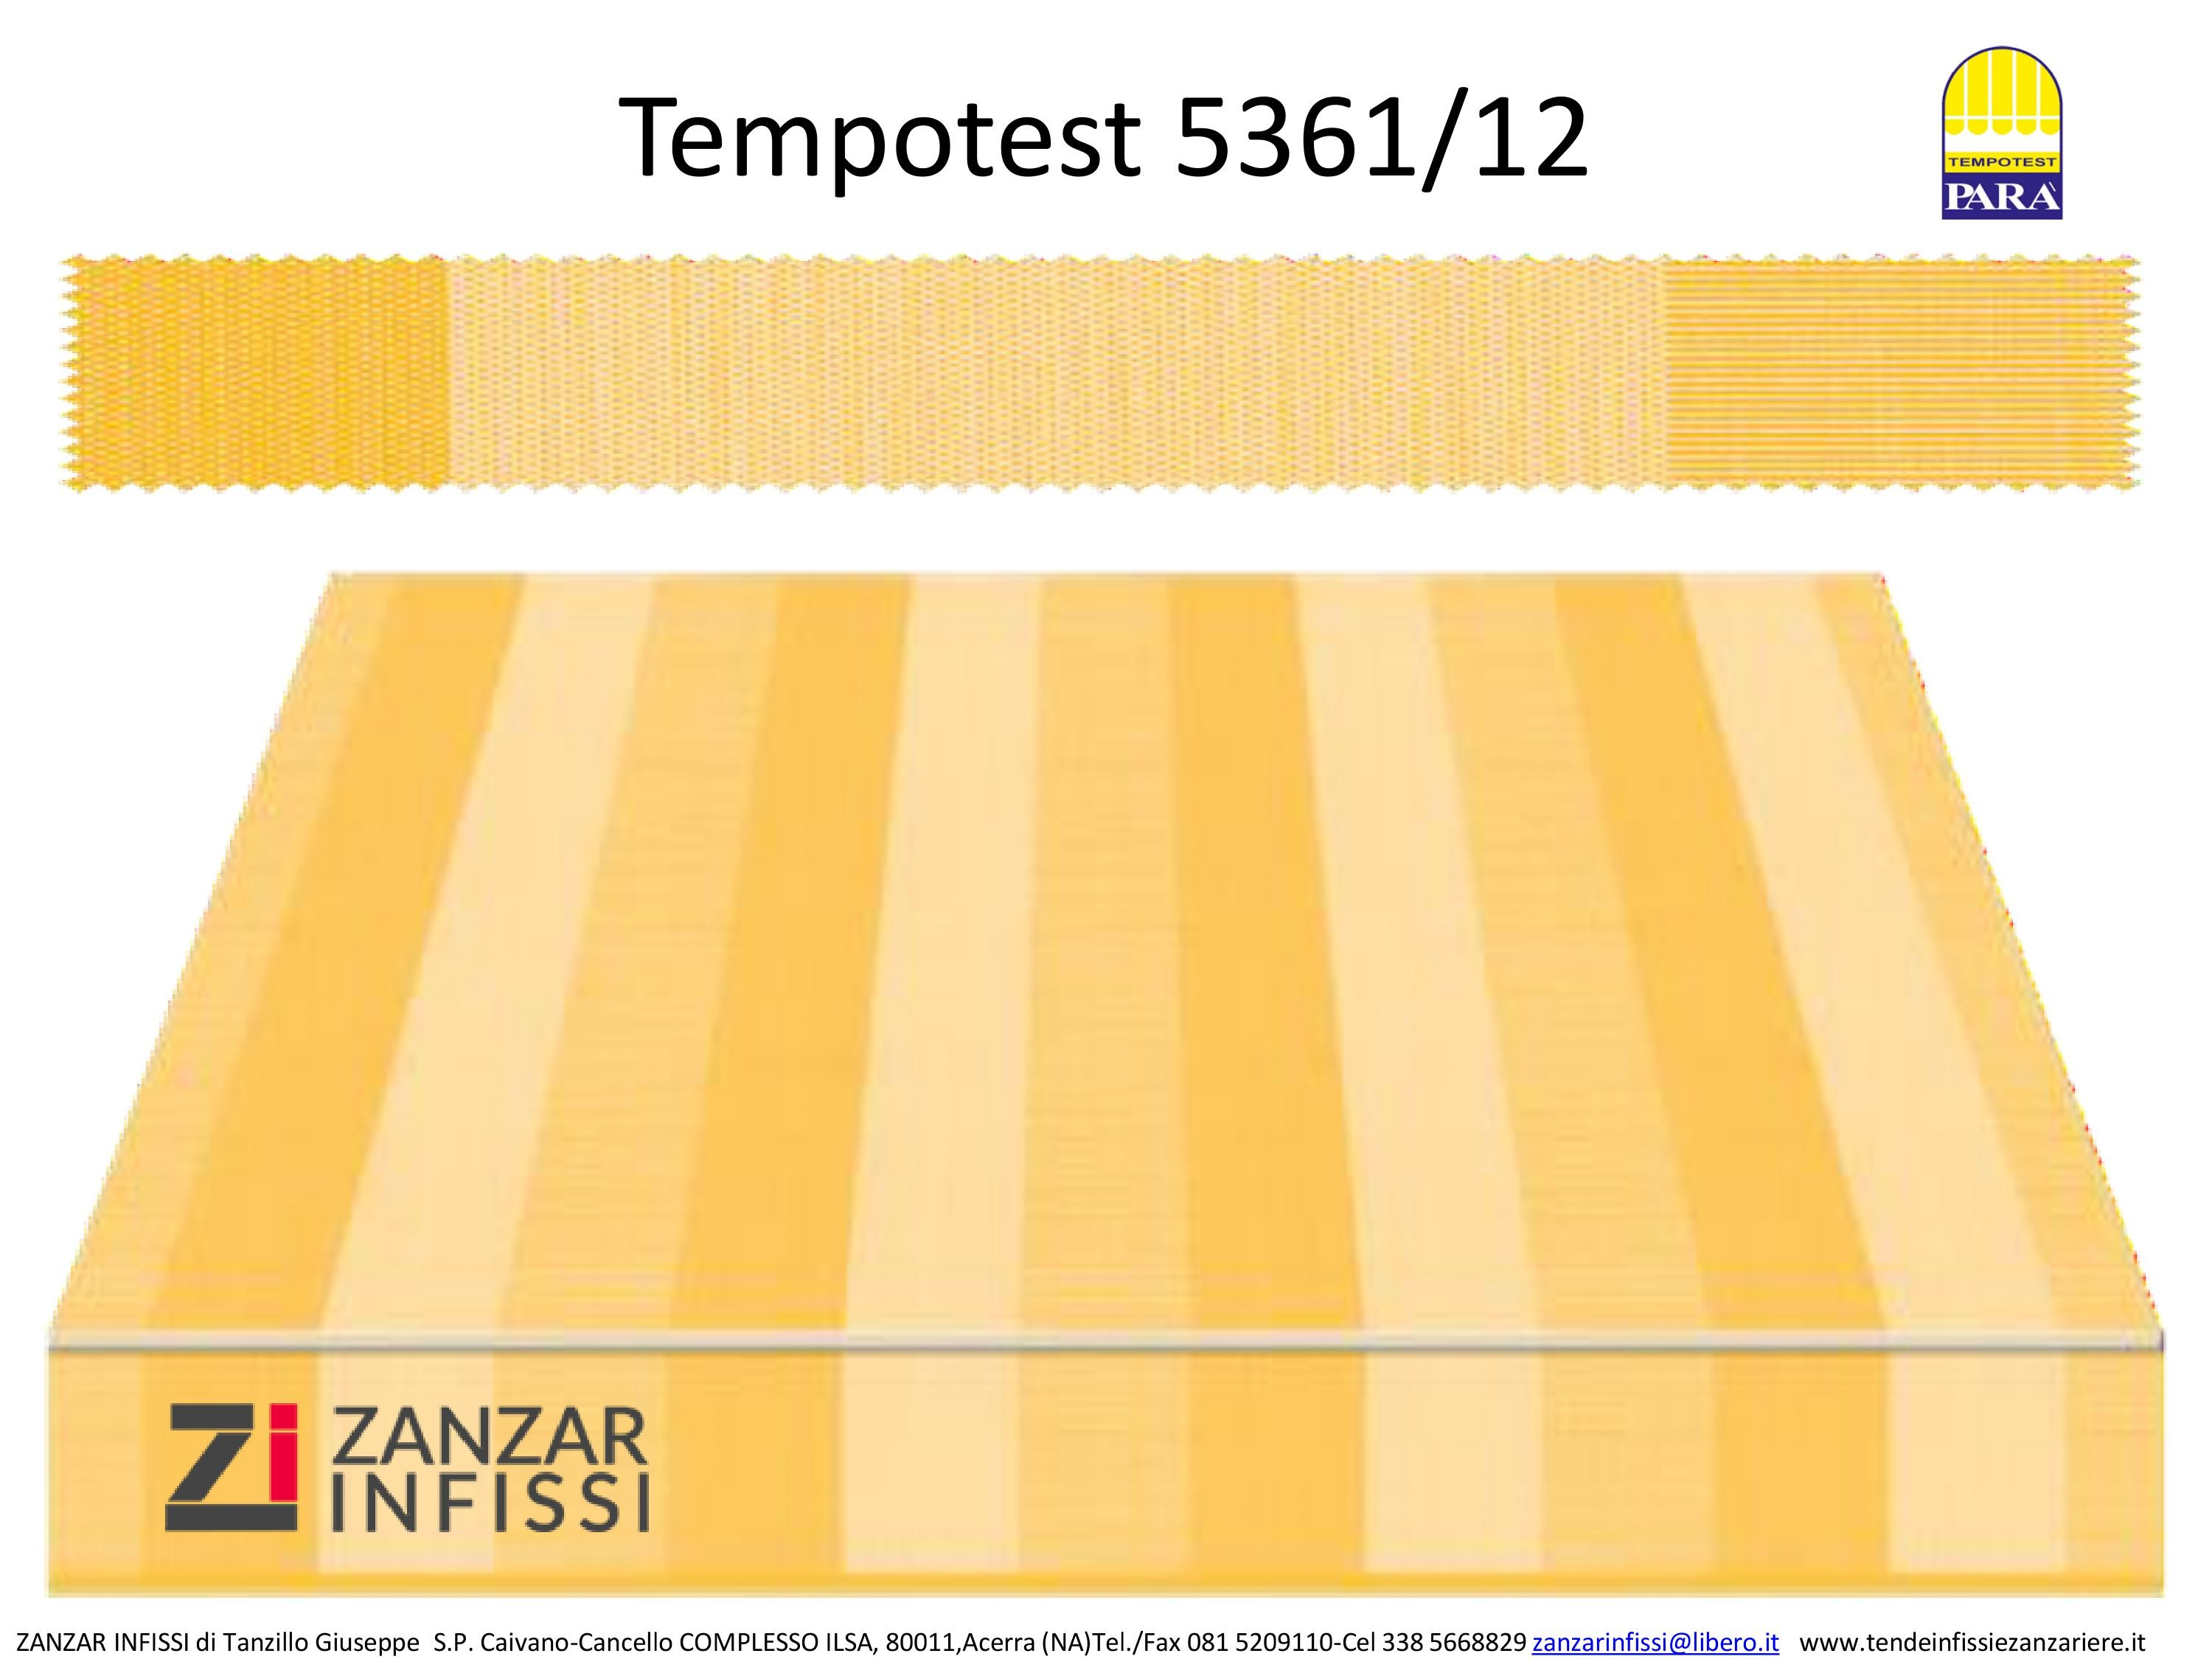 Tempotest 5361/12